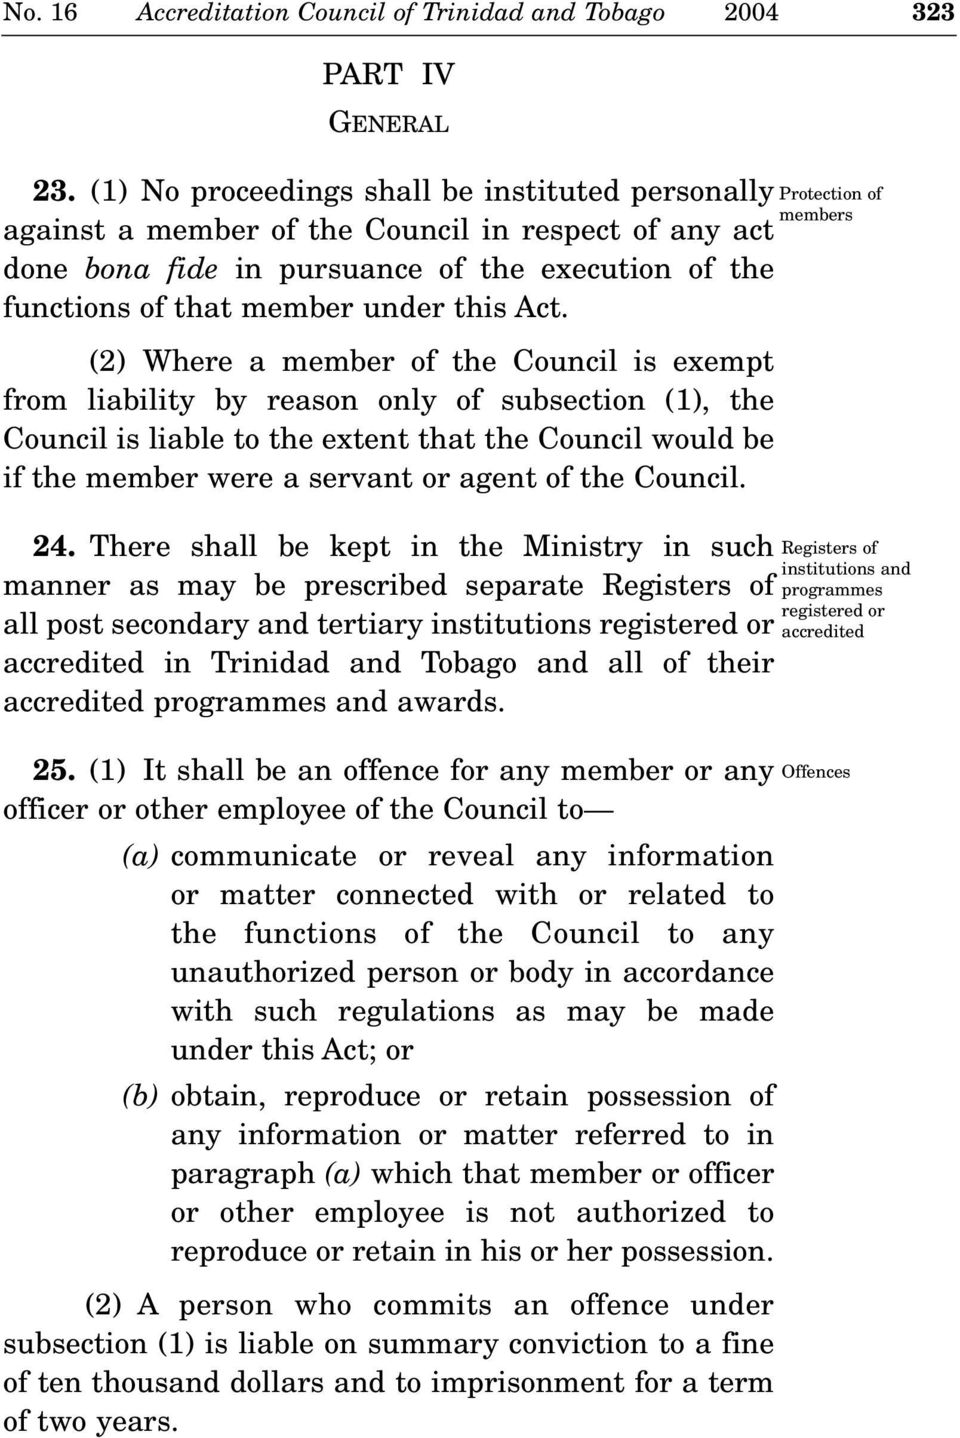 (2) Where a member of the Council is exempt from liability by reason only of subsection (1), the Council is liable to the extent that the Council would be if the member were a servant or agent of the